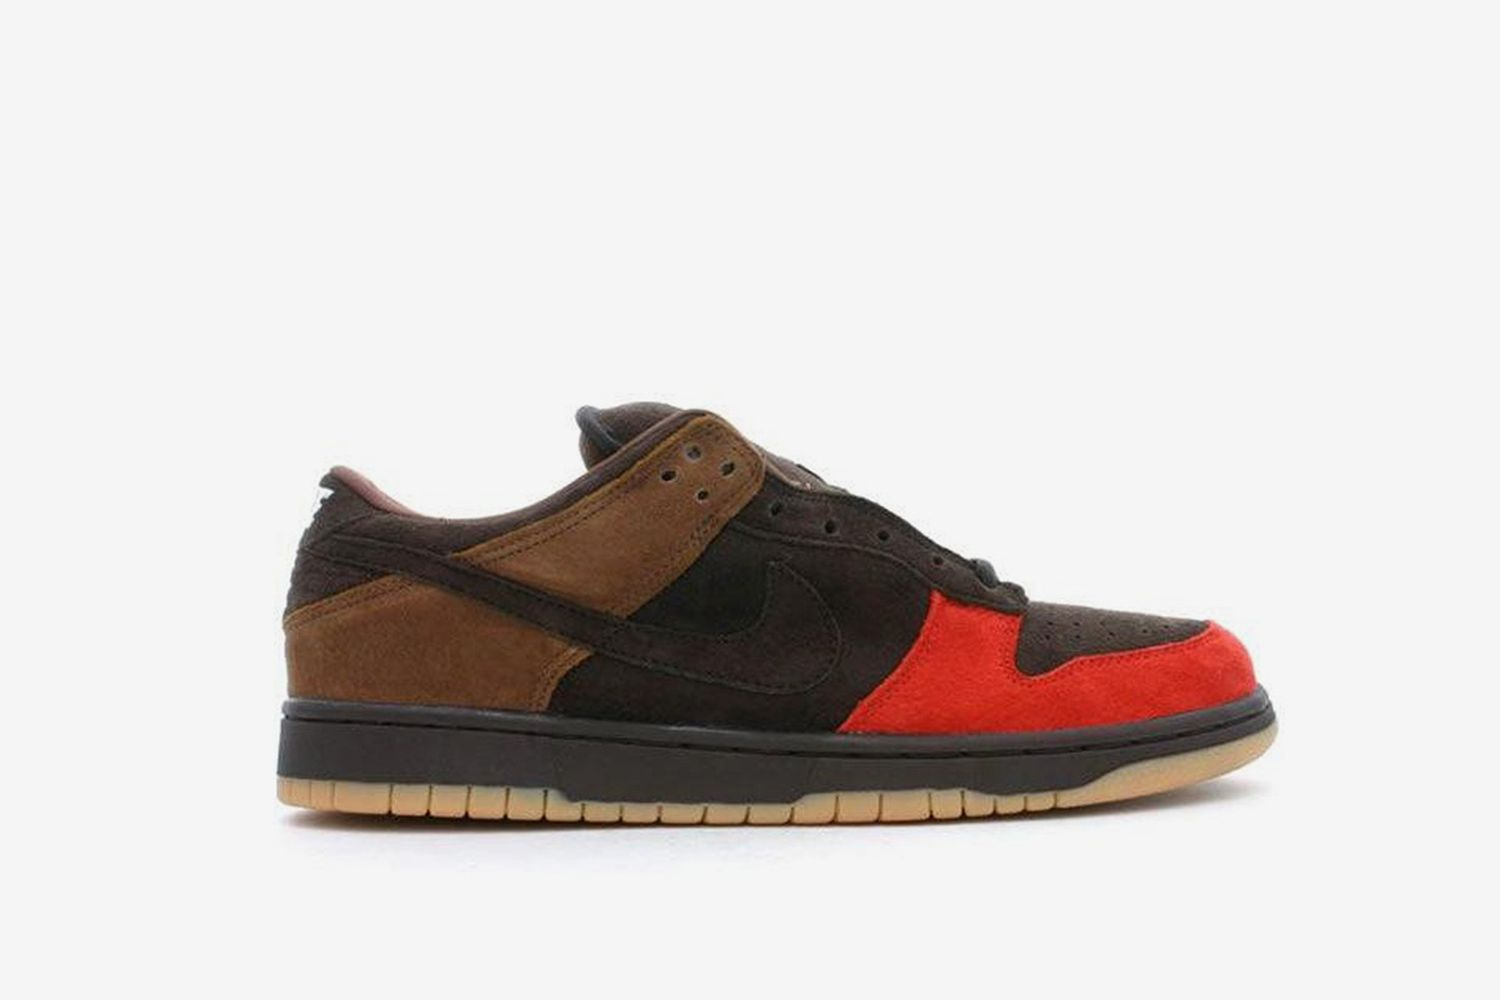 Dunk Low Bison